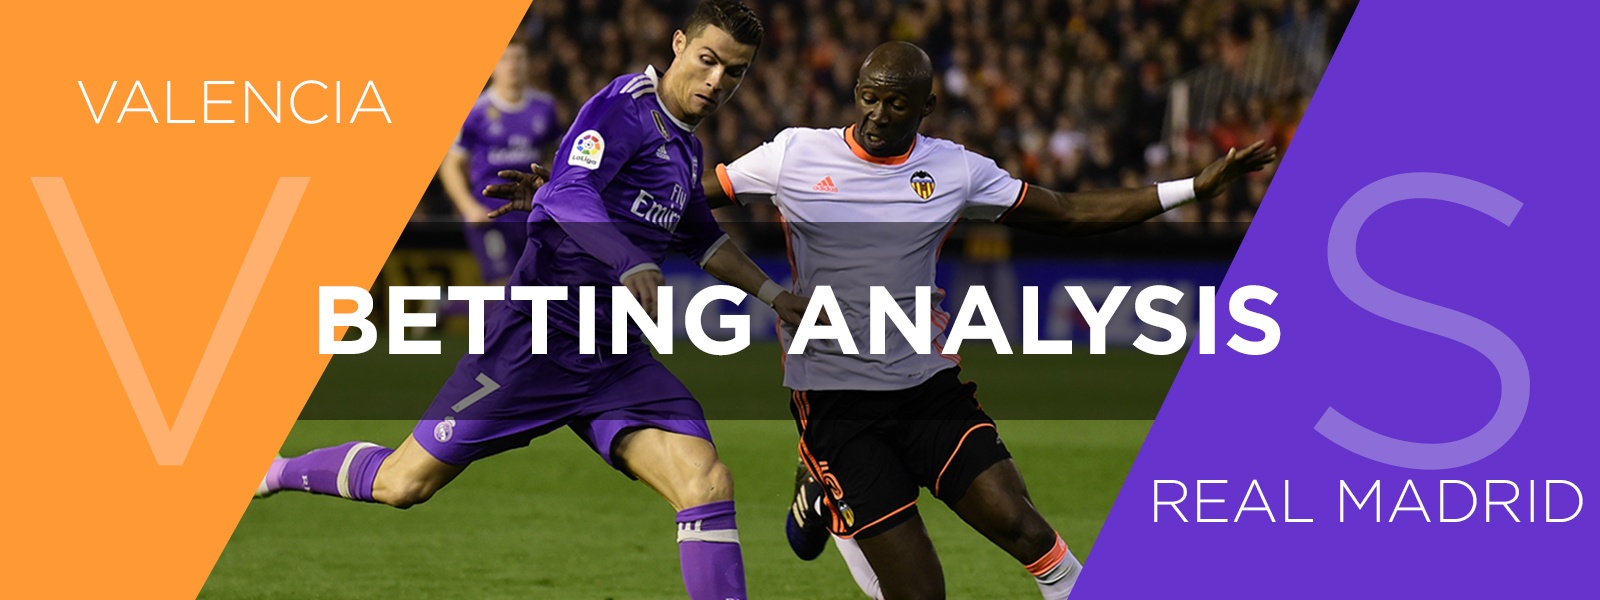 Betting analysis: Valencia vs. Real Madrid